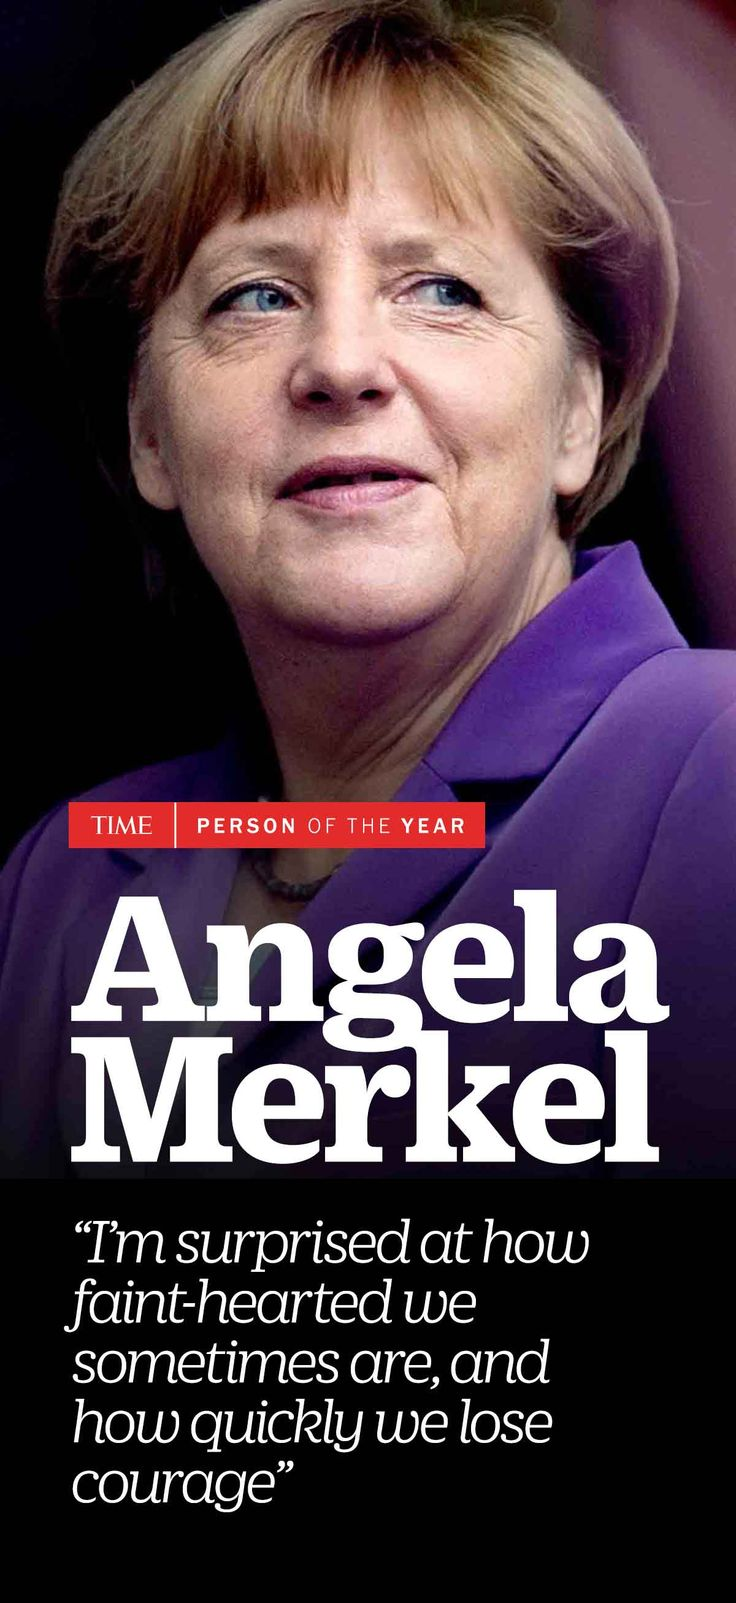 33 best frau angela merkel images on pinterest | angela merkel